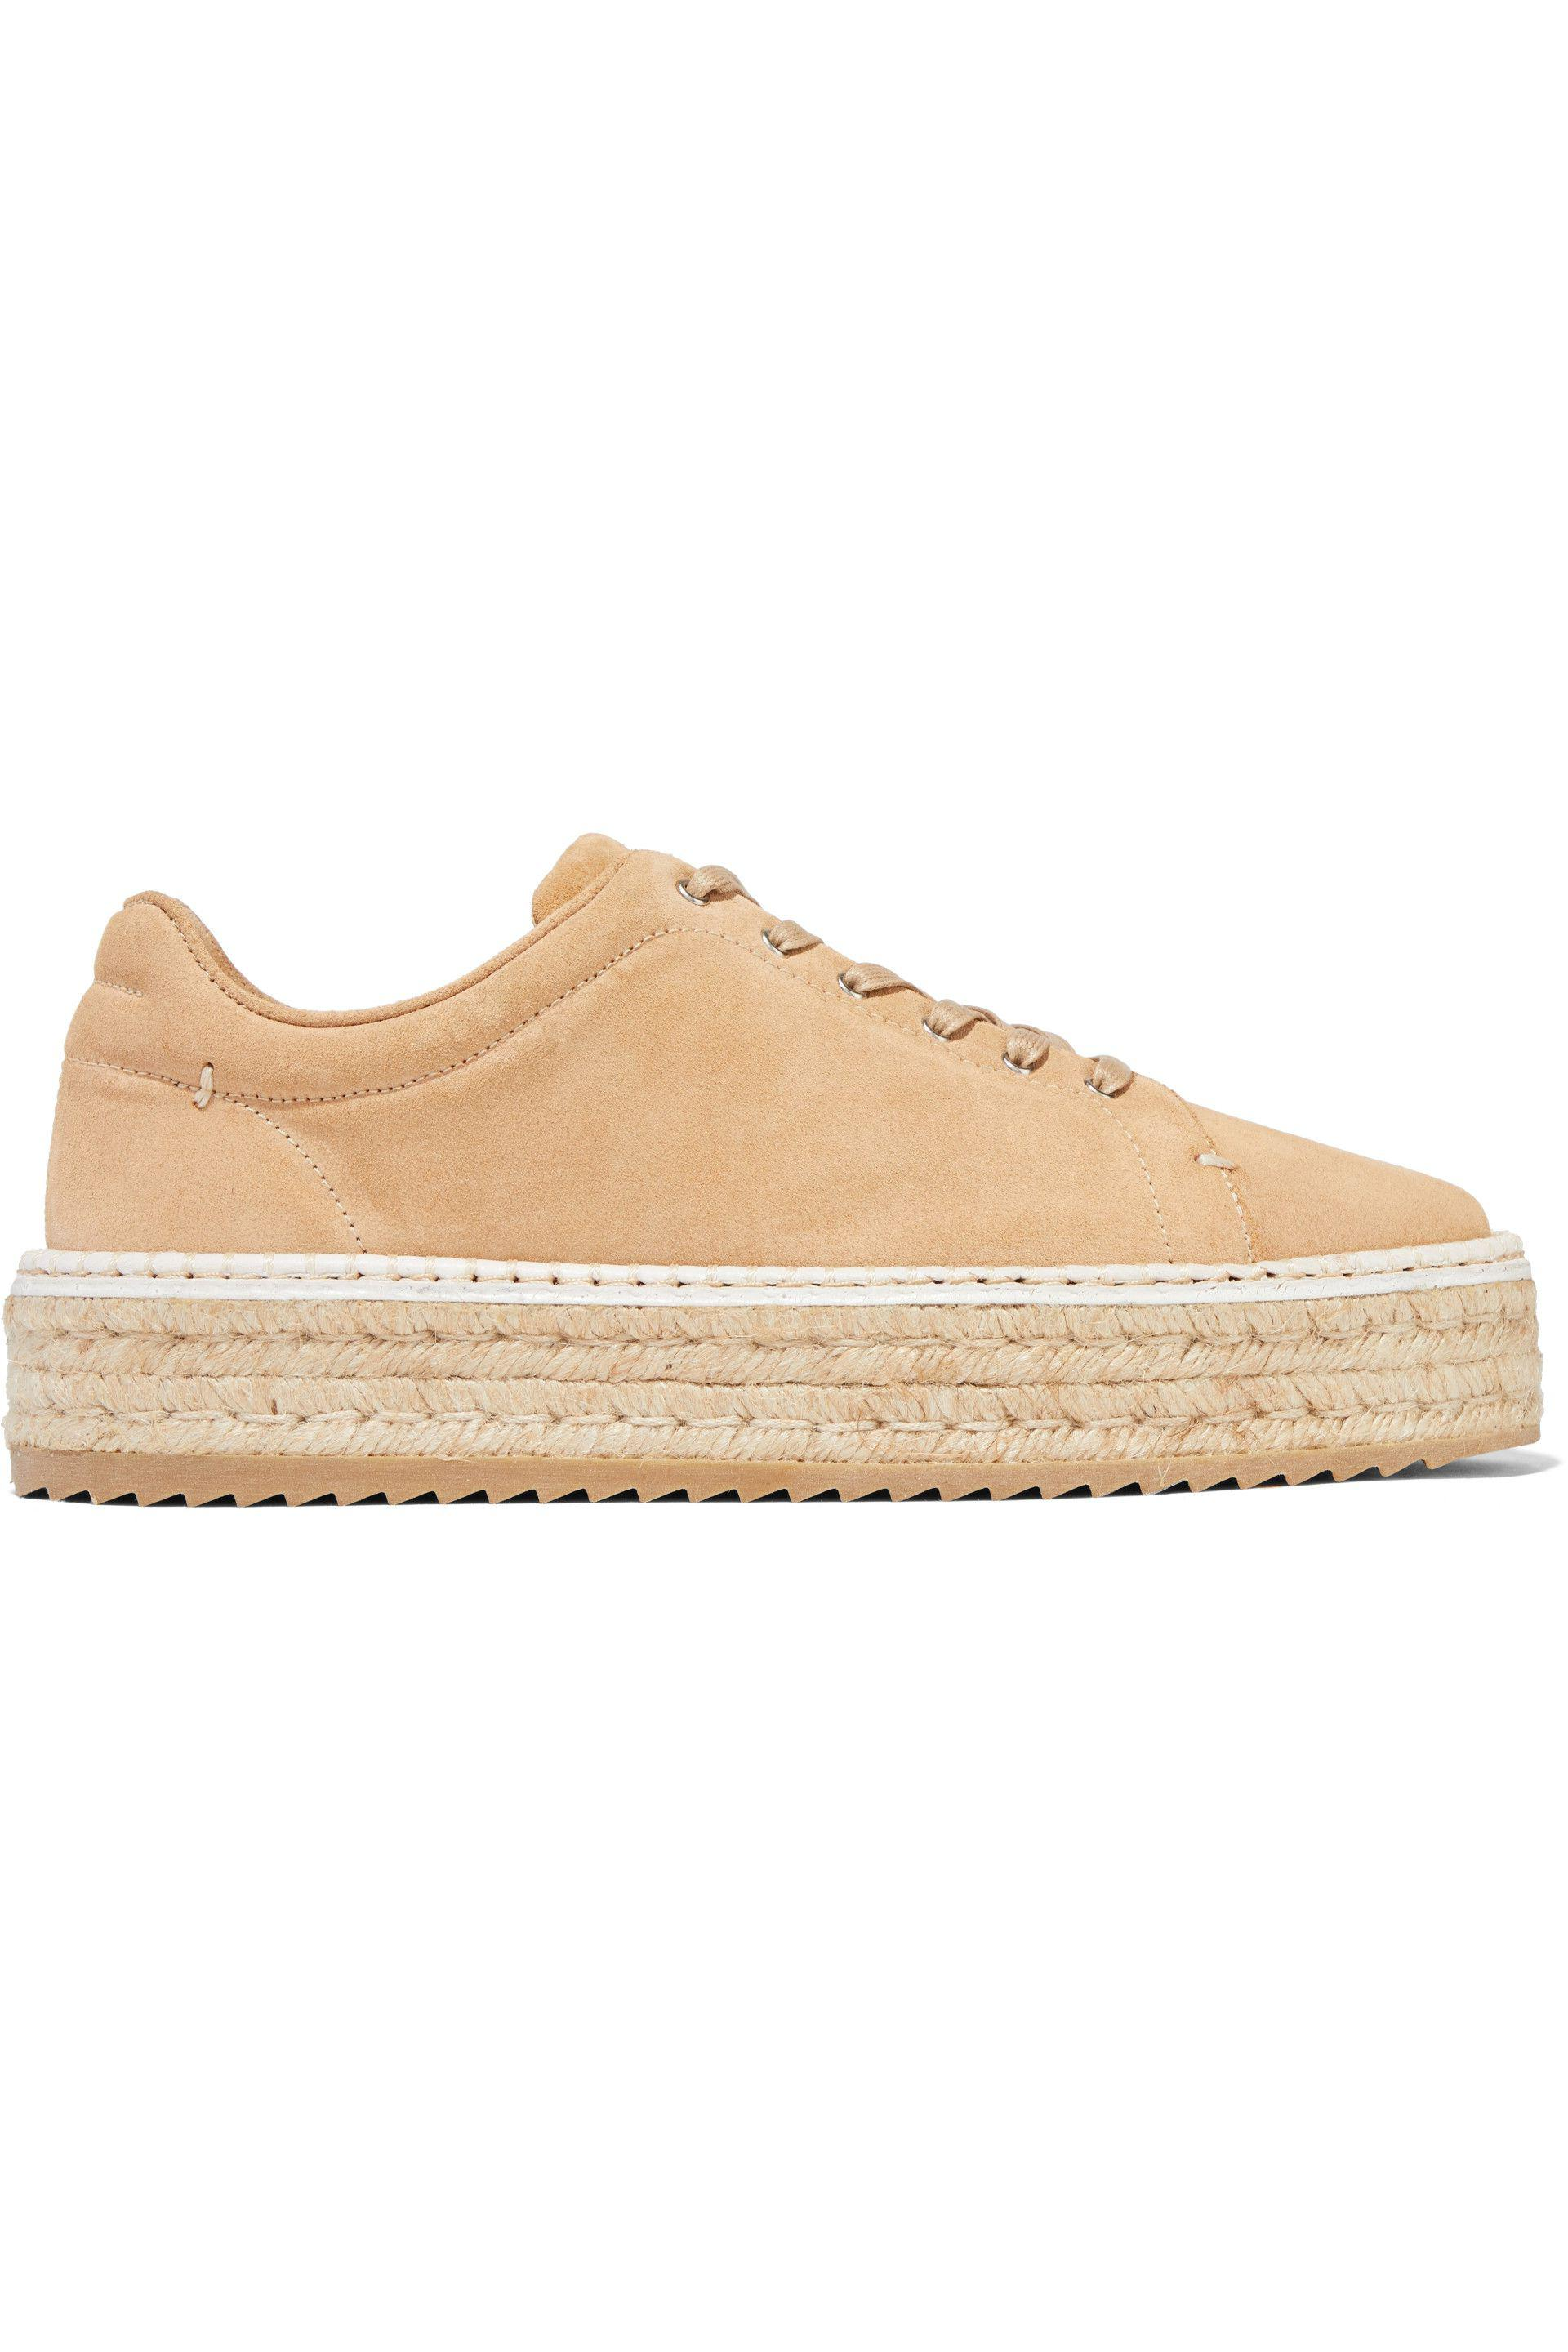 Rag & Bone Woman Standard Issue Embroidered Suede Sneakers Sand Size 40 Rag & Bone udJhr